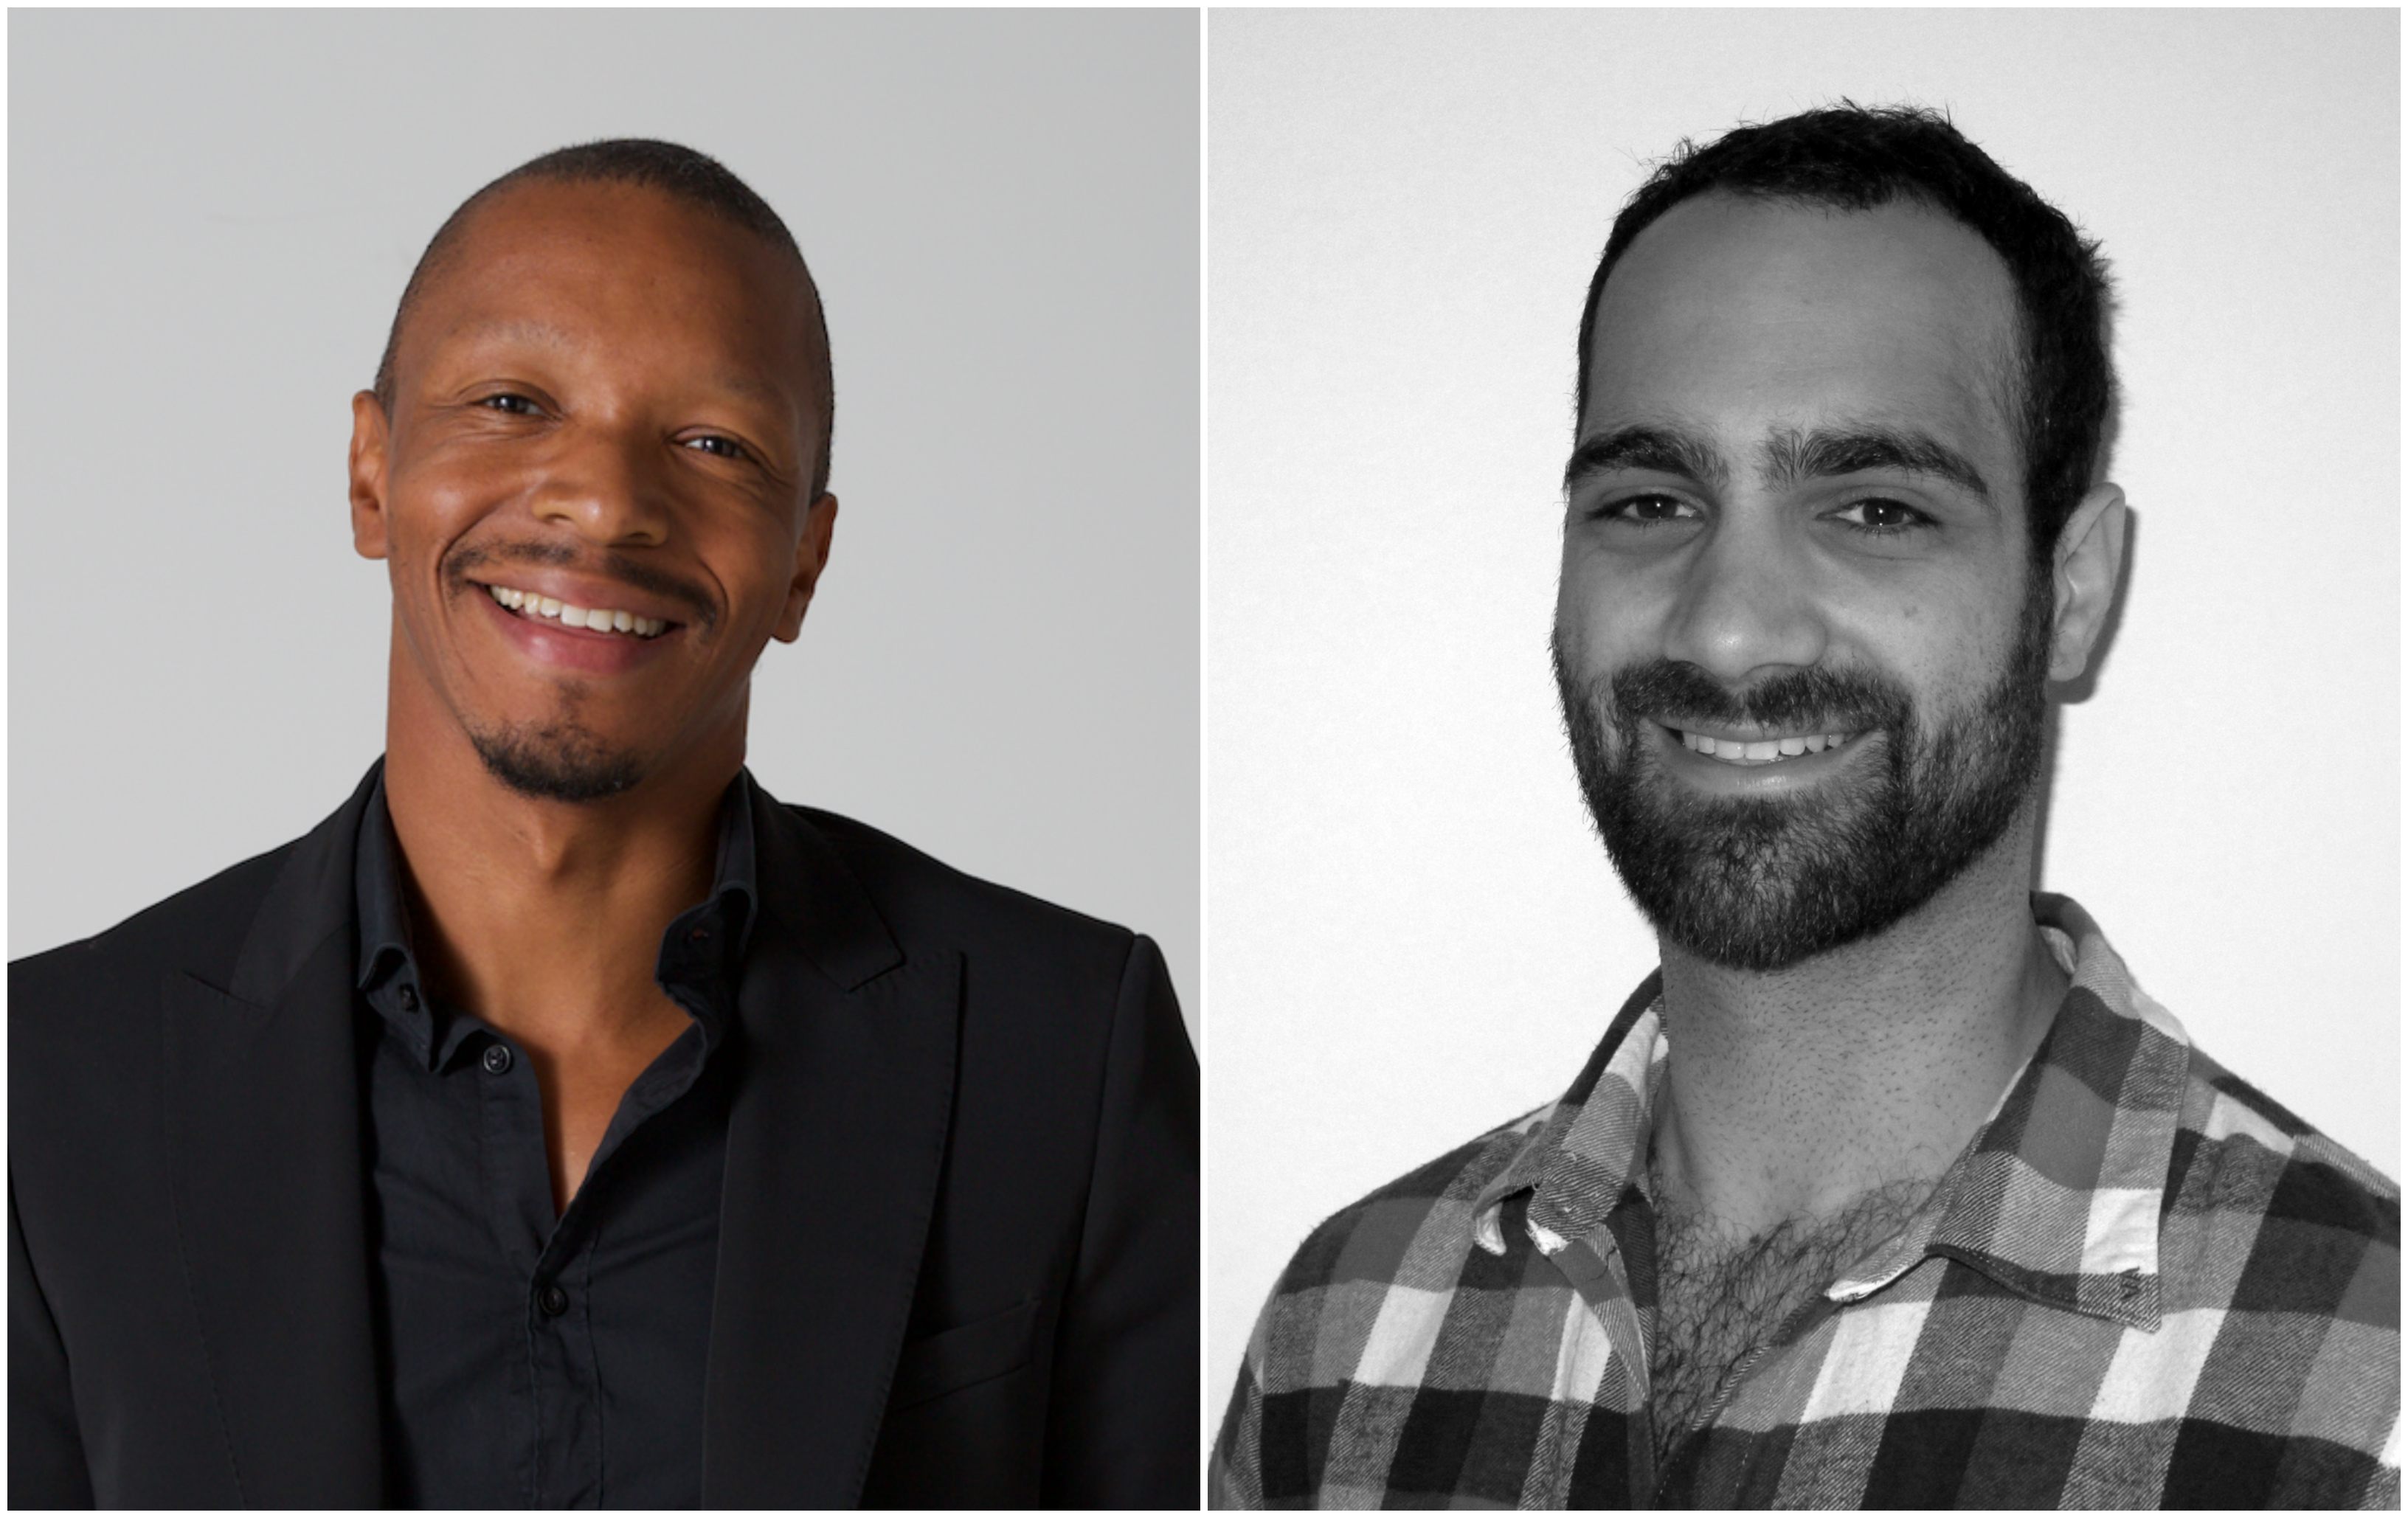 Digitas' Maurice Riley and Octagon's Ben Hartman remain as Jury presidents for Cannes Lions 2021; Seven Aussies on Cannes juries